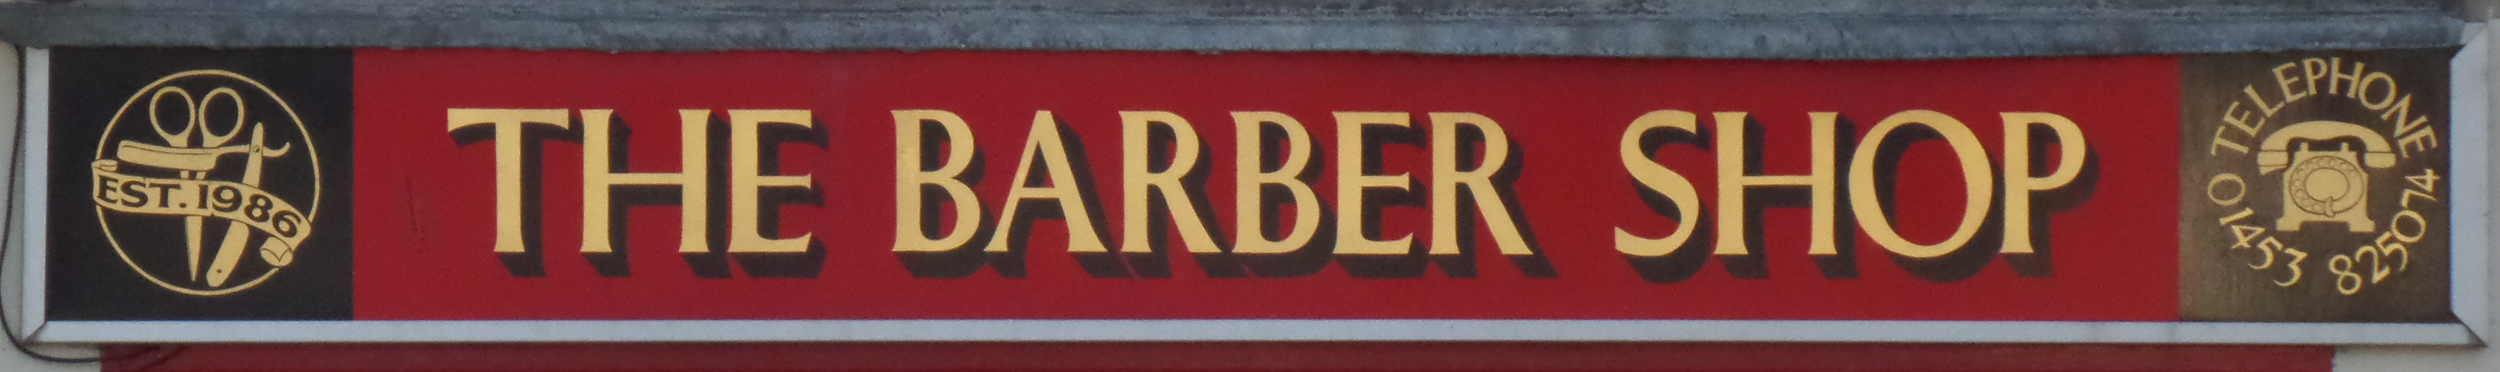 The Barber Shop (barbers)